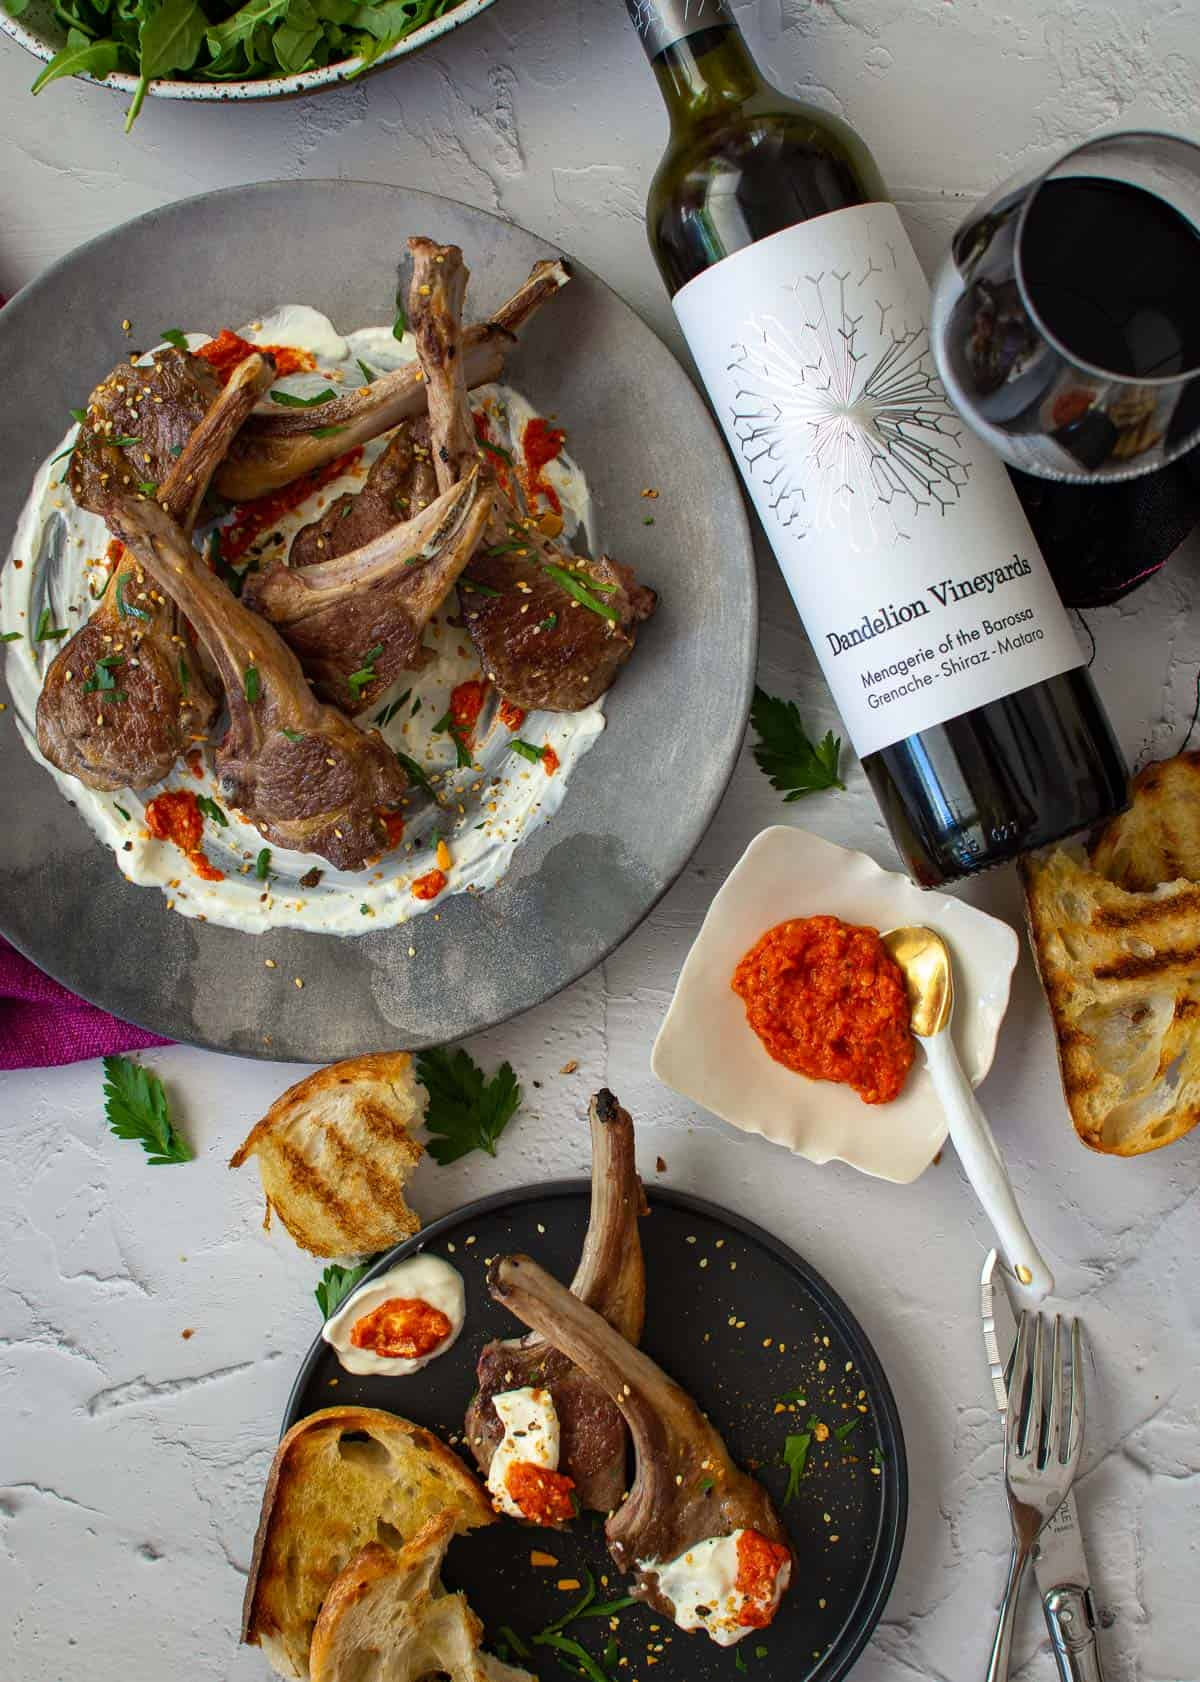 dandelion gsm wine, grilled bread and grilled lamb chops on a plate with harissa and labneh